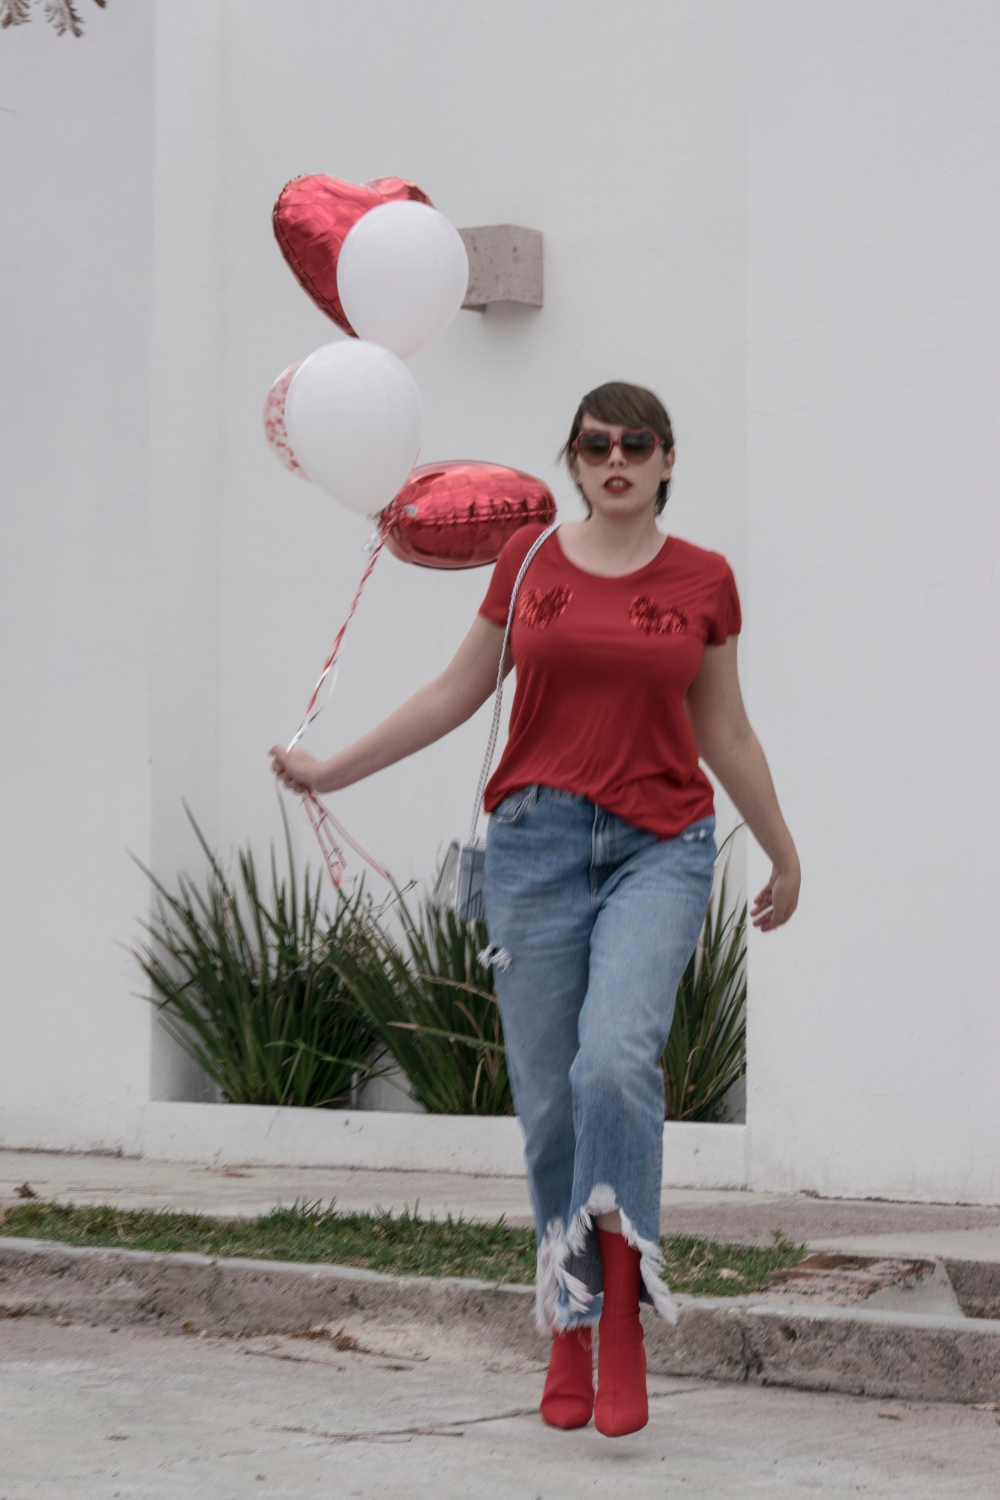 valentines day, balloons, red t-shirt, mom jeans, silver bag, small bags, tumblr girl, love, love pictures, valentines day outfits, cool outfits, valentines day balloons, girls with ballons, personal style, jeans and a t-shirt, heartshaped glasses, mexican fashion blogger, style blogger, mexican, bloggers mexicanas, clouds, balloons in clouds, sky, ripped jeans, outfit, red t-shirt outfit, red boots, sock boots, sequins, sequined hearts, t-shirt from h&m